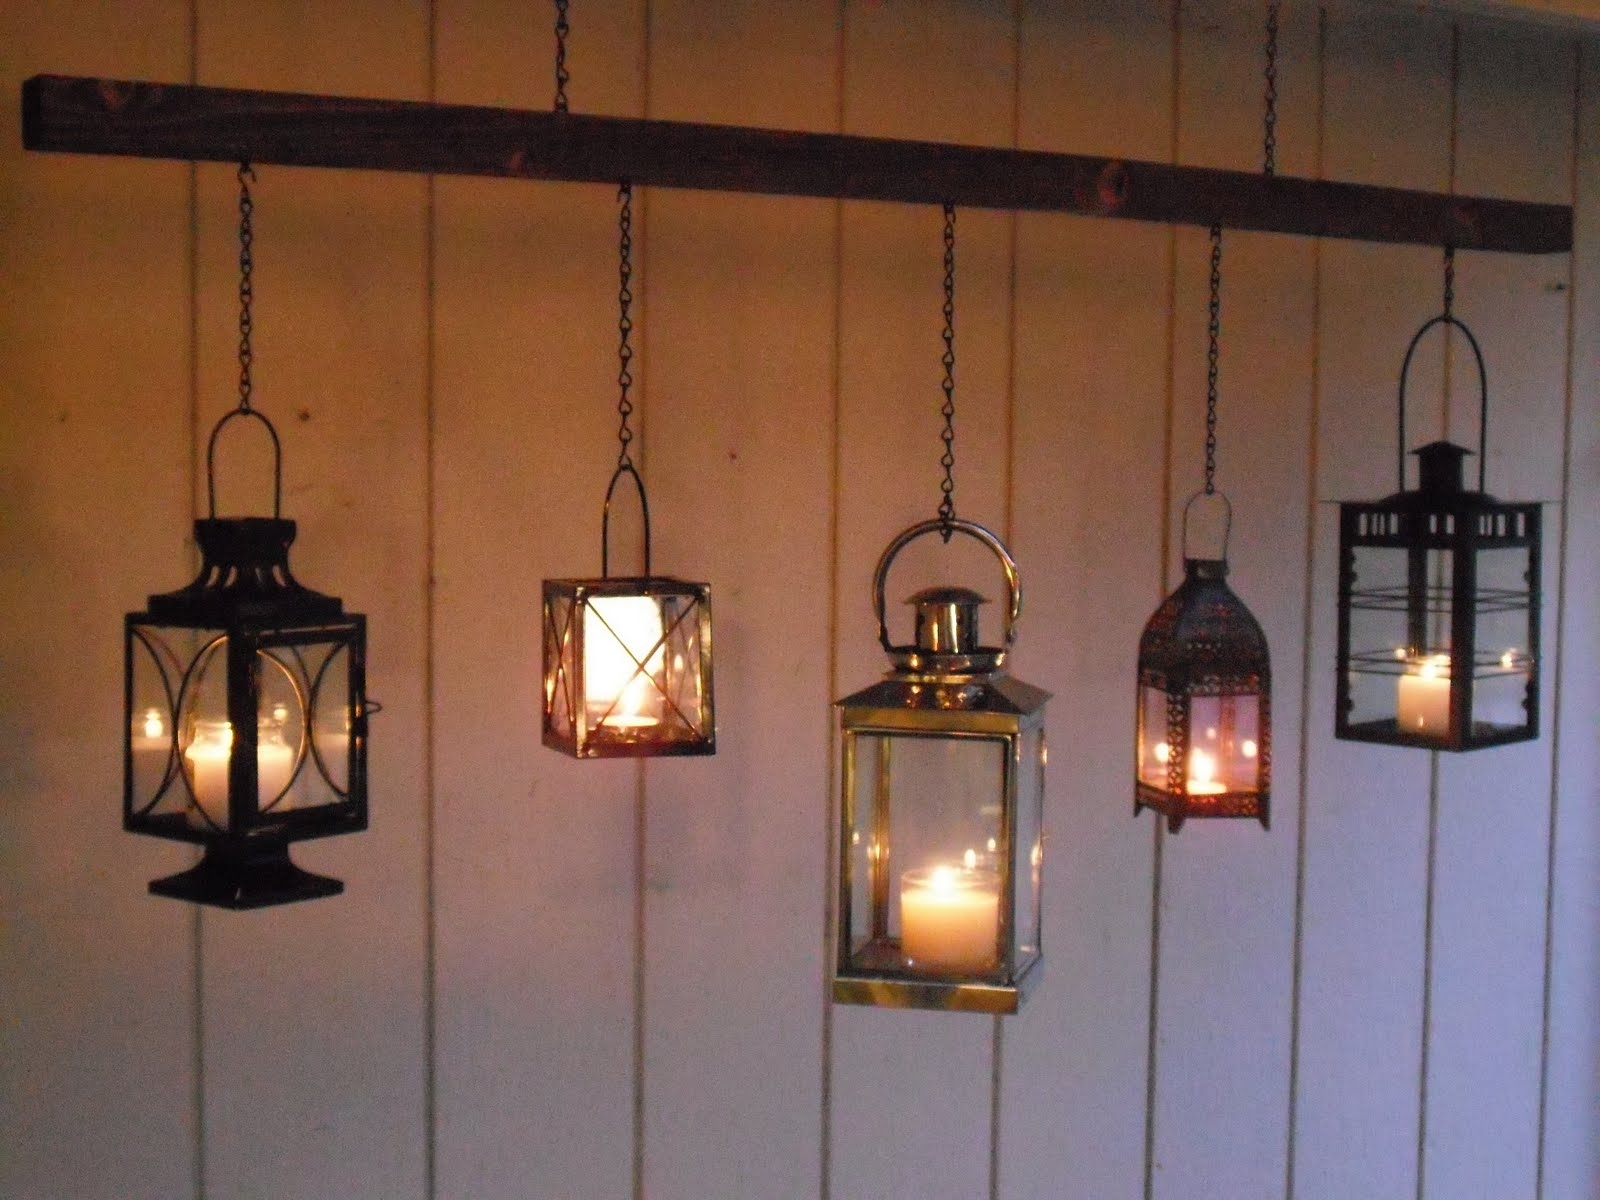 Wedding Decoration Hanging Candle Lanterns – Matt And Jentry Home Design Regarding Outdoor Hanging Lanterns Candles (View 10 of 15)